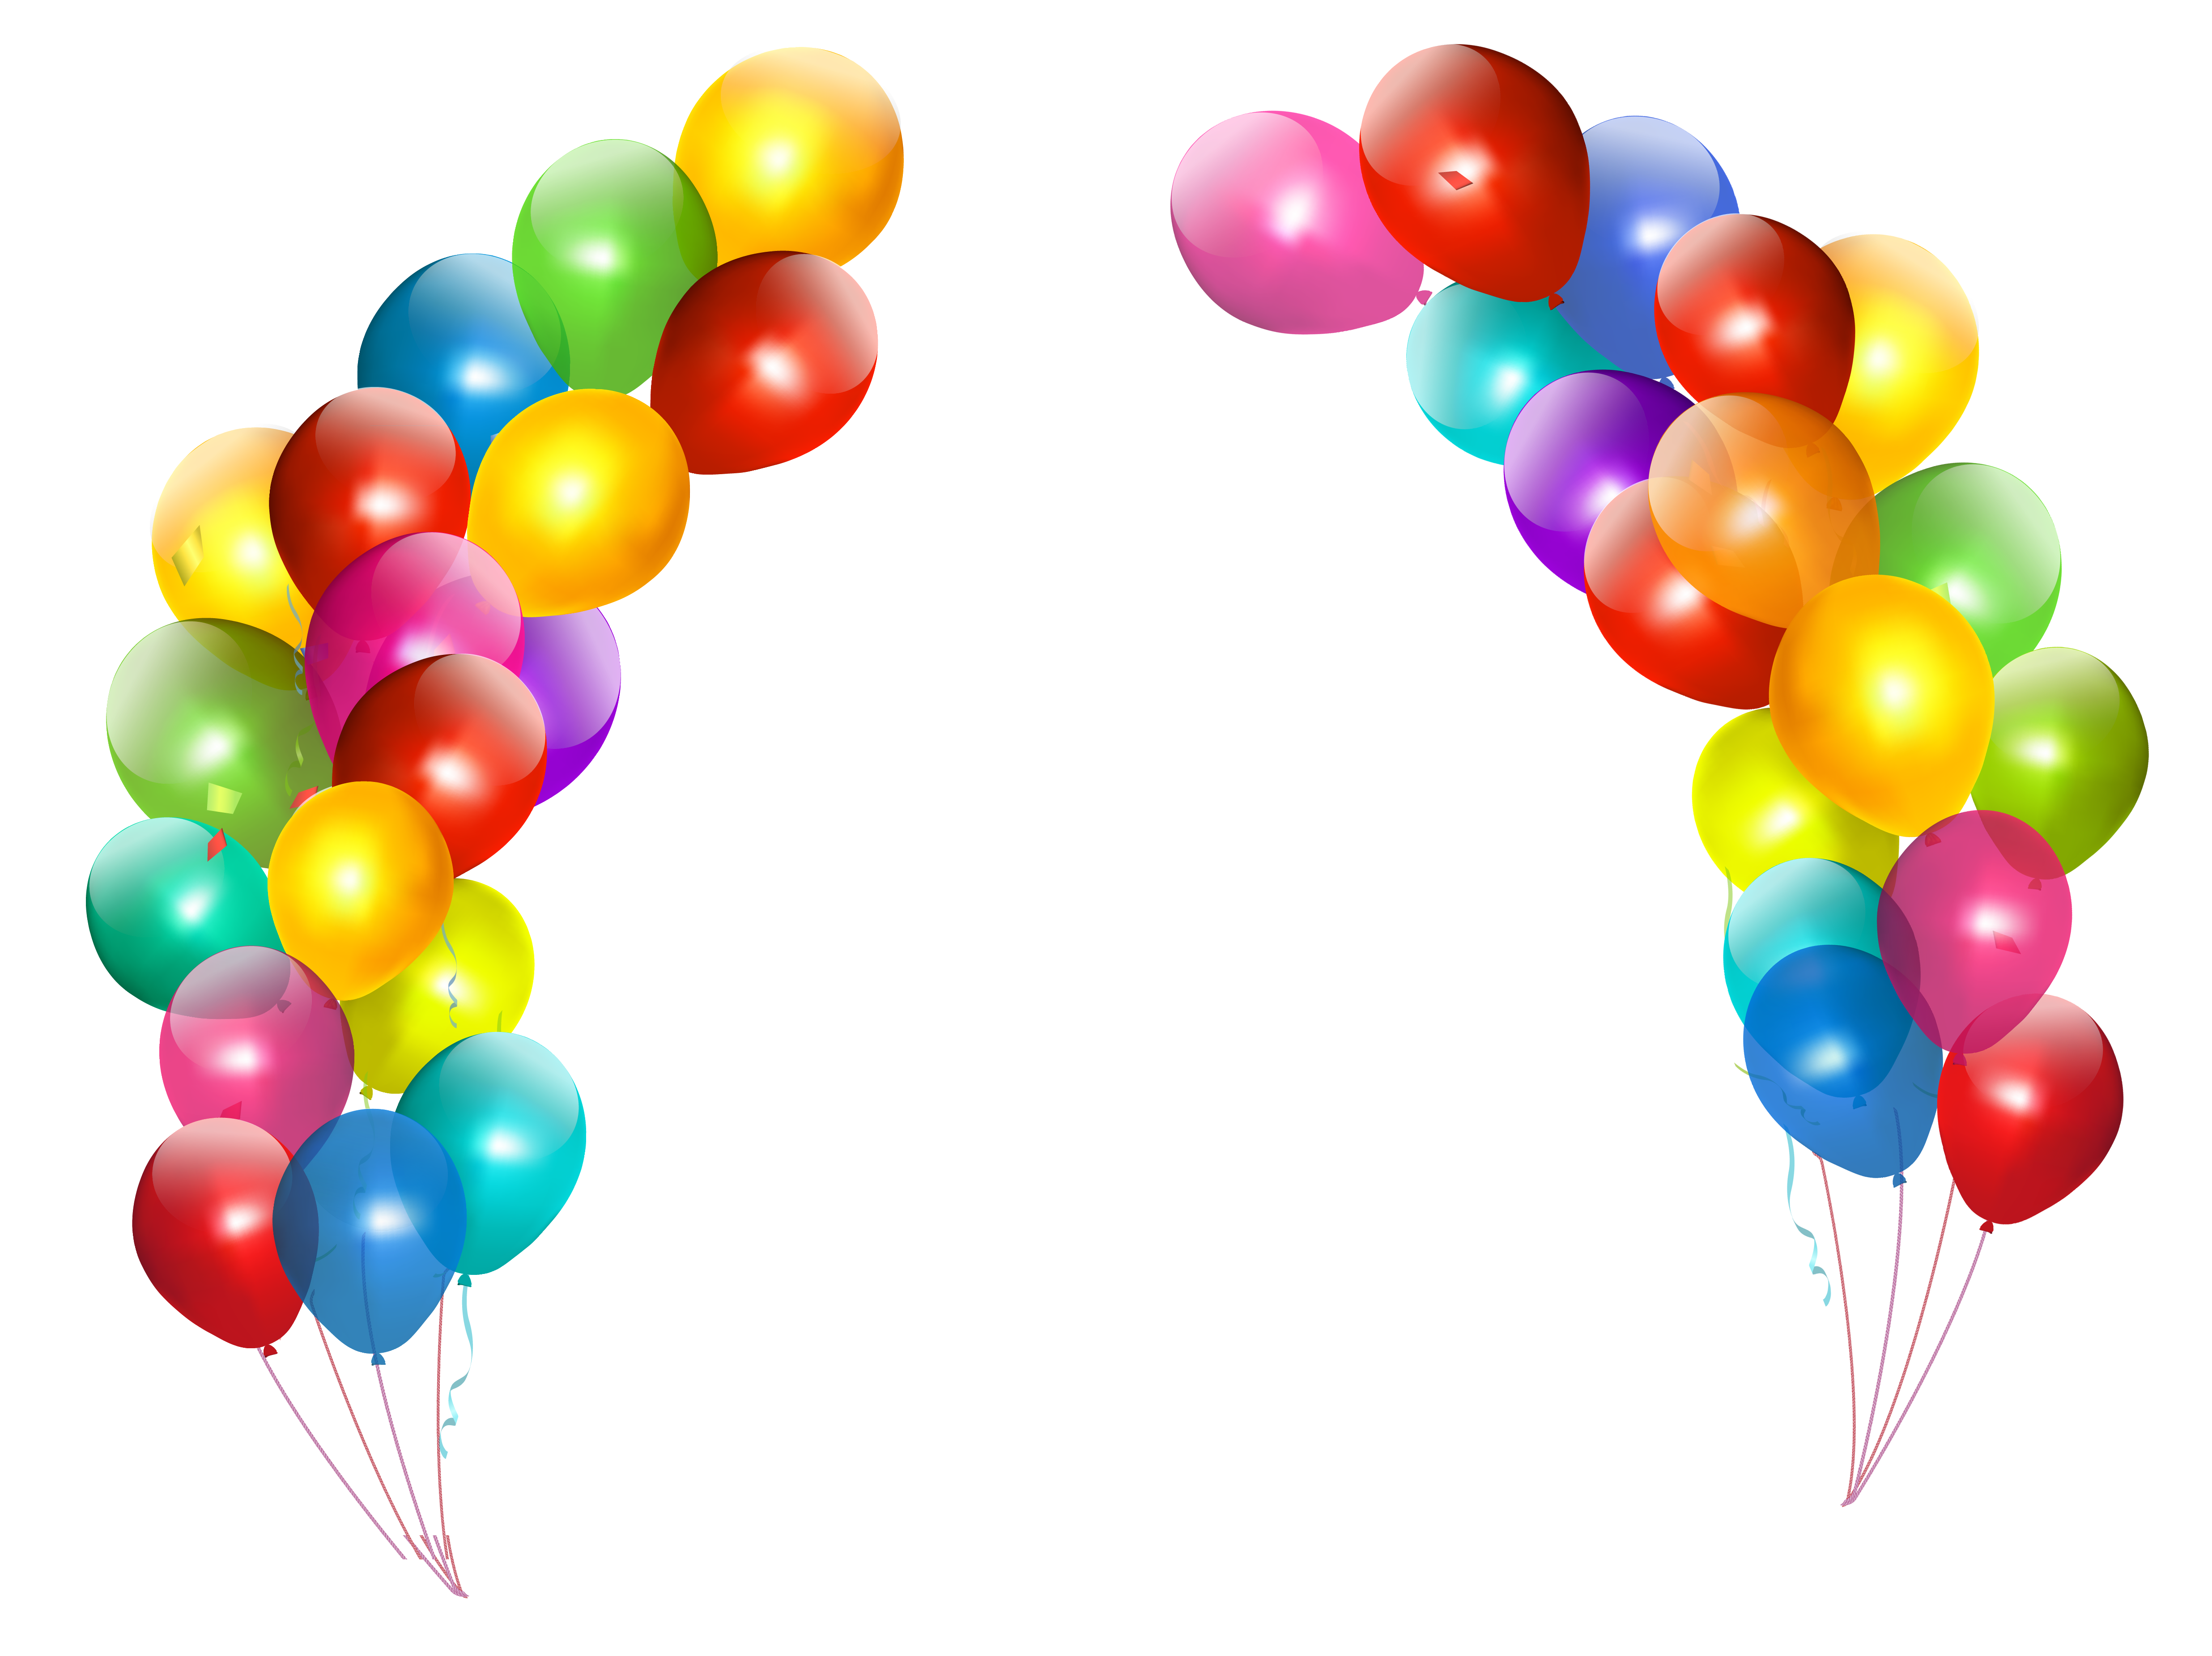 Surprise clipart birthday decor. Colorful balloons transparent png